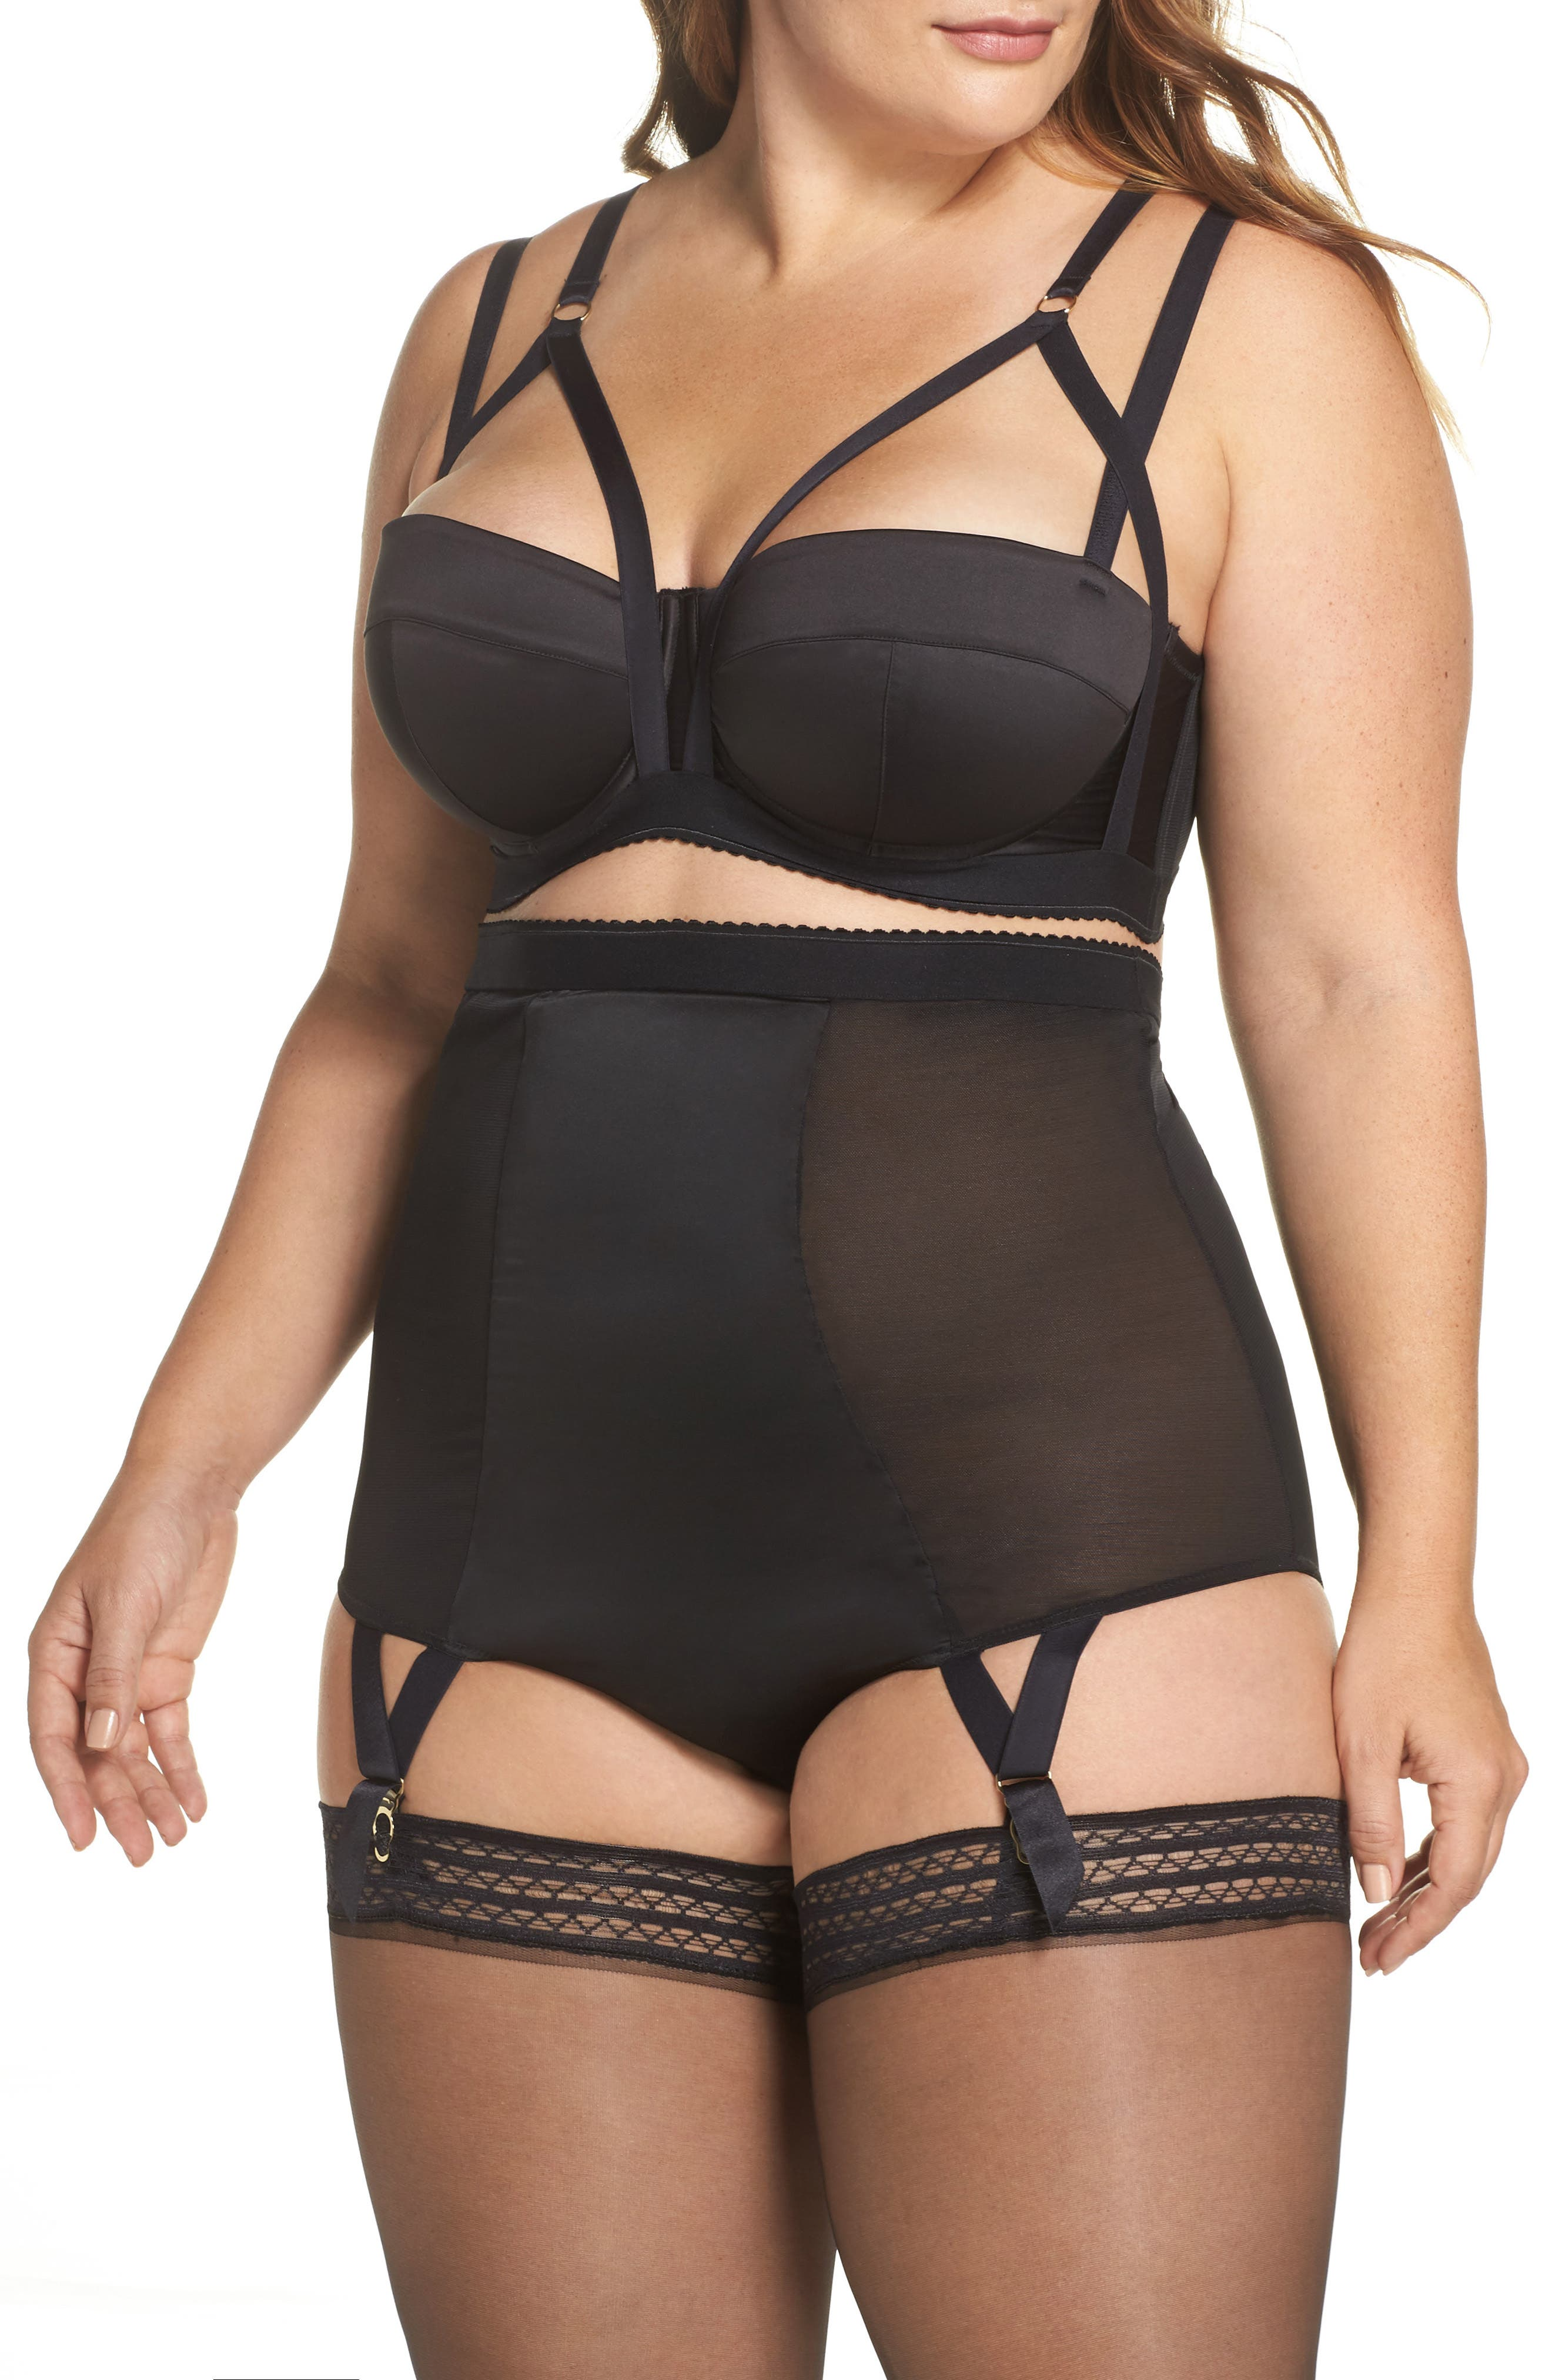 Playful Promies Candace Noir Strappy Underwire Bra,                             Alternate thumbnail 6, color,